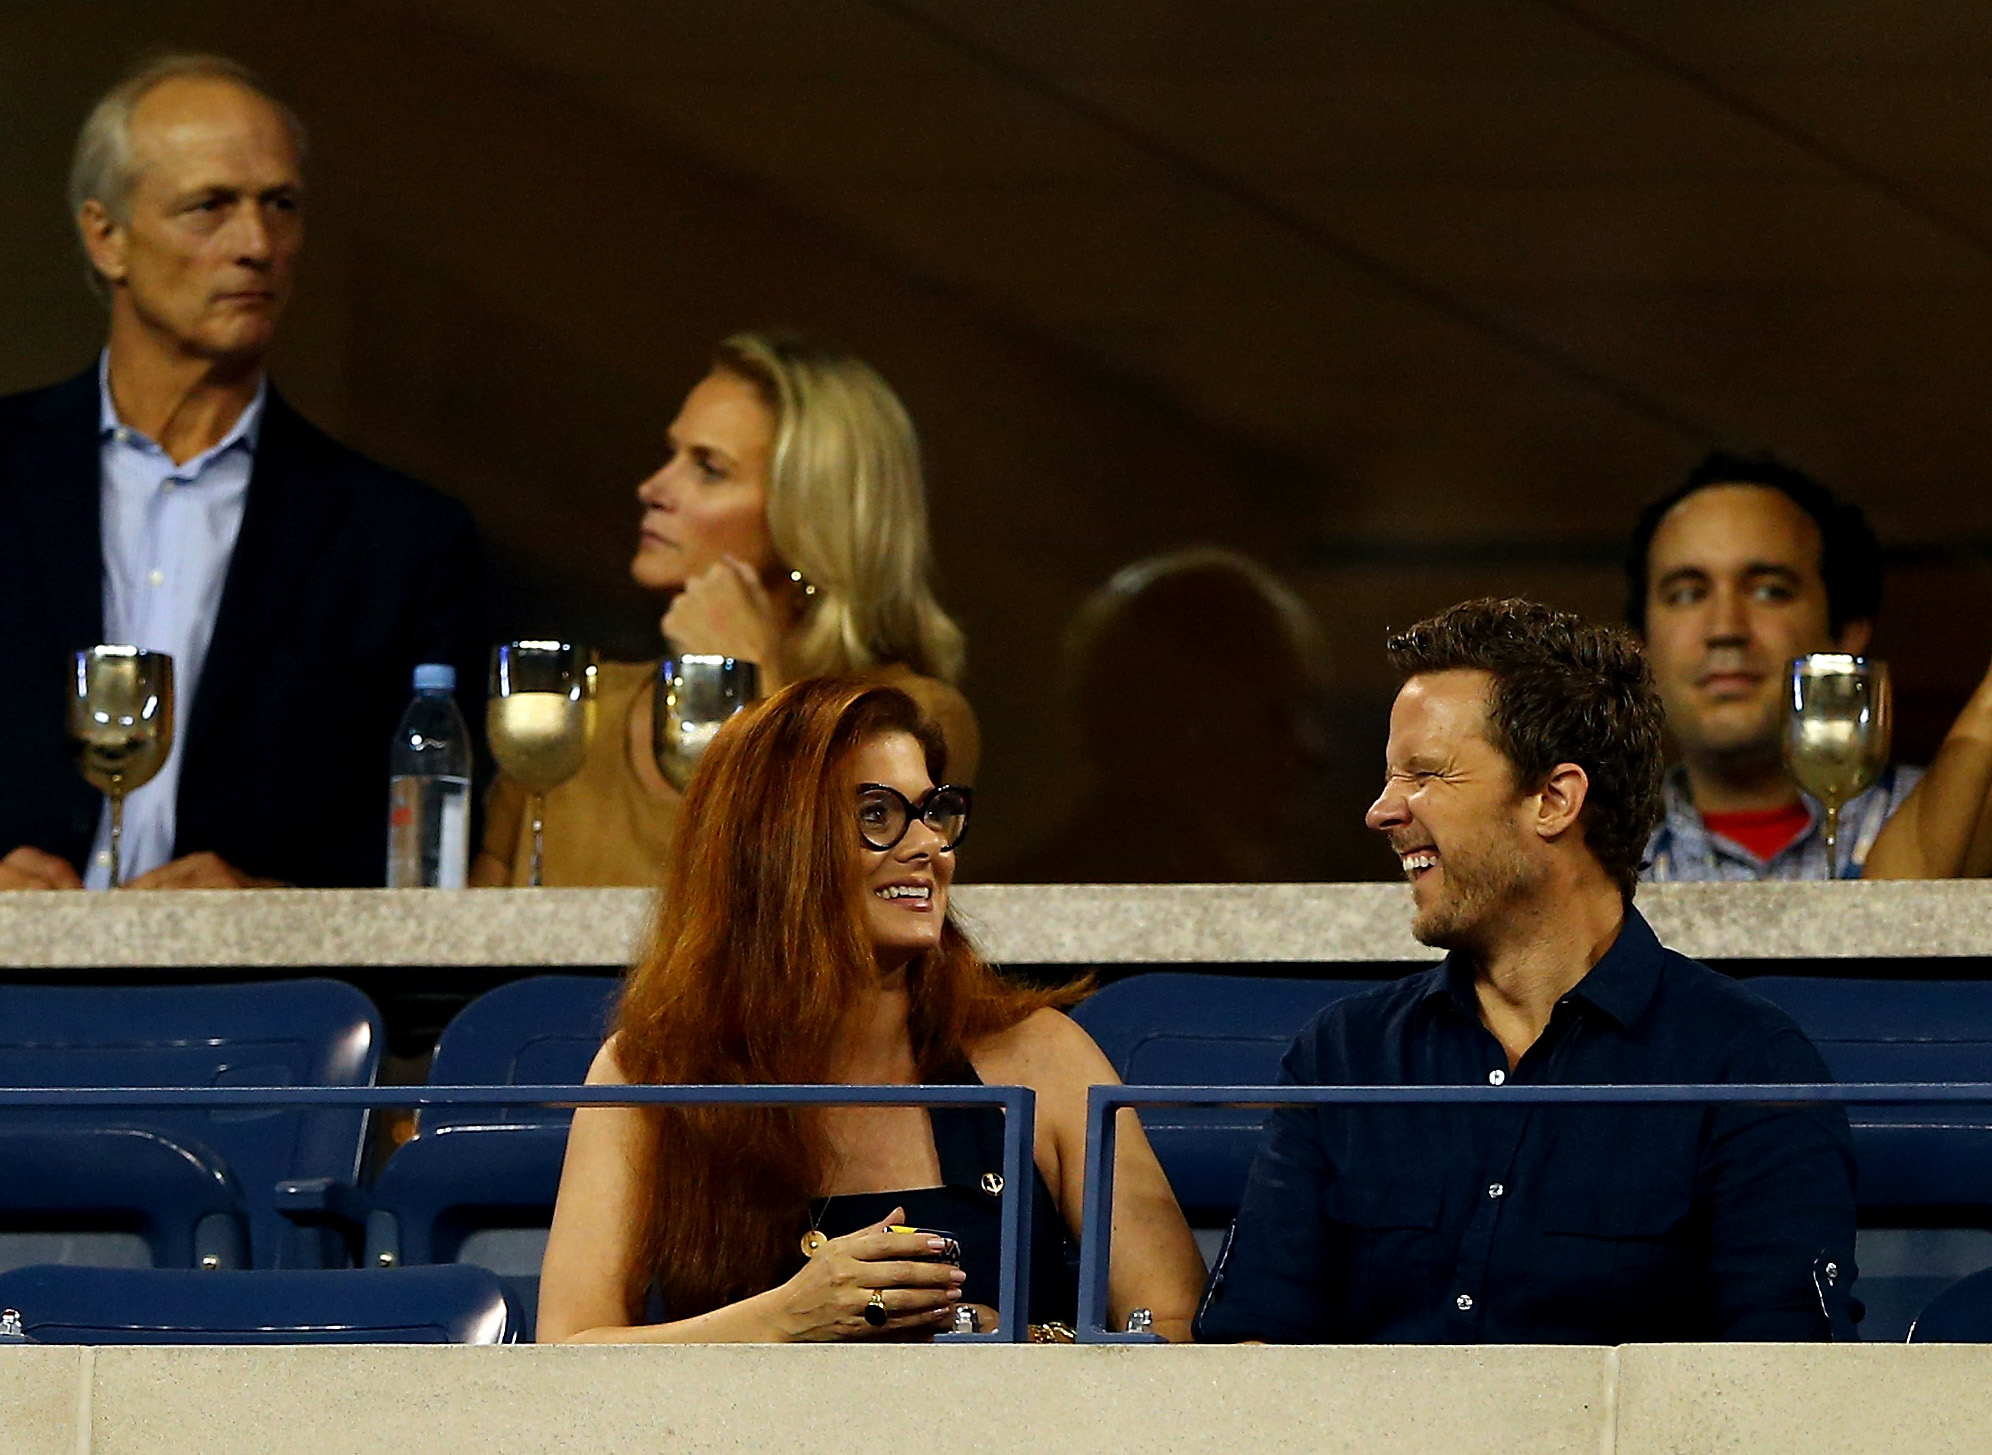 Debra Messing watched the US Open with her former Smash costar and real-life boyfriend, Will Chase.